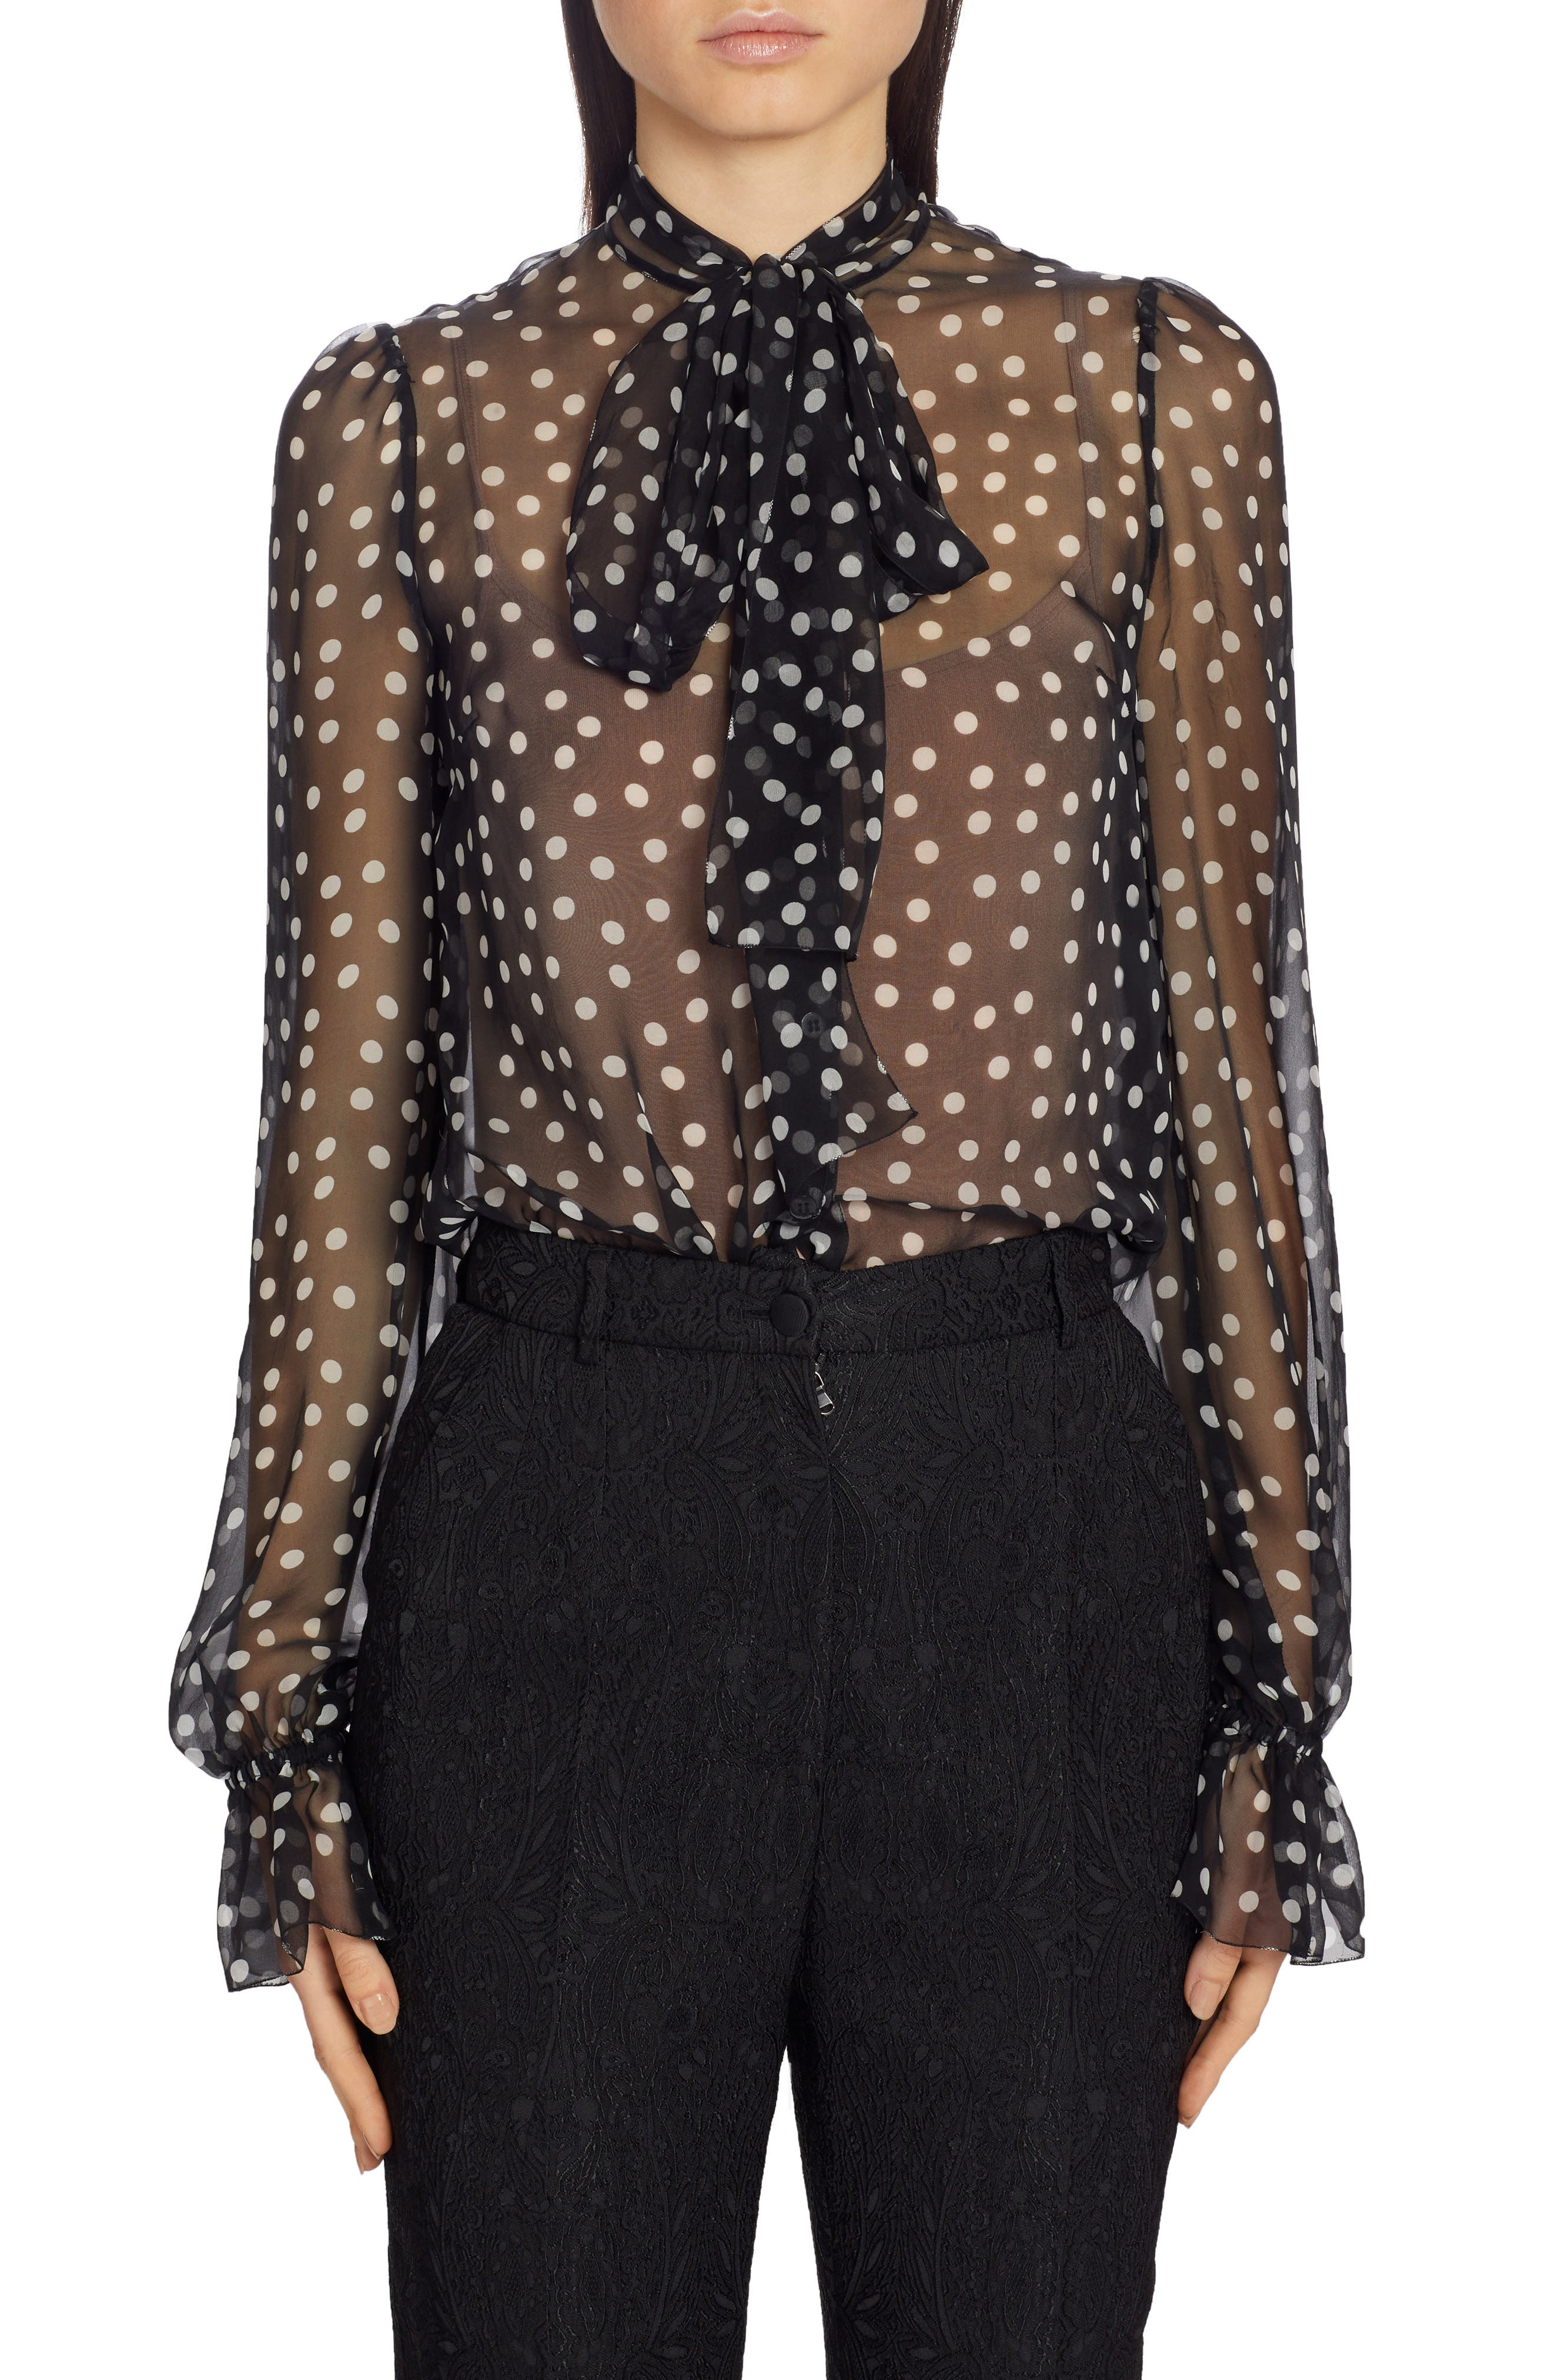 Polka dots pepper the diaphanous silhouette of this jaunty tie-neck blouse framed with billowy flounce-cuff sleeves. Style Name: Dolce & gabbana Polka Dot Sheer Chiffon Blouse. Style Number: 5933259. Available in stores.